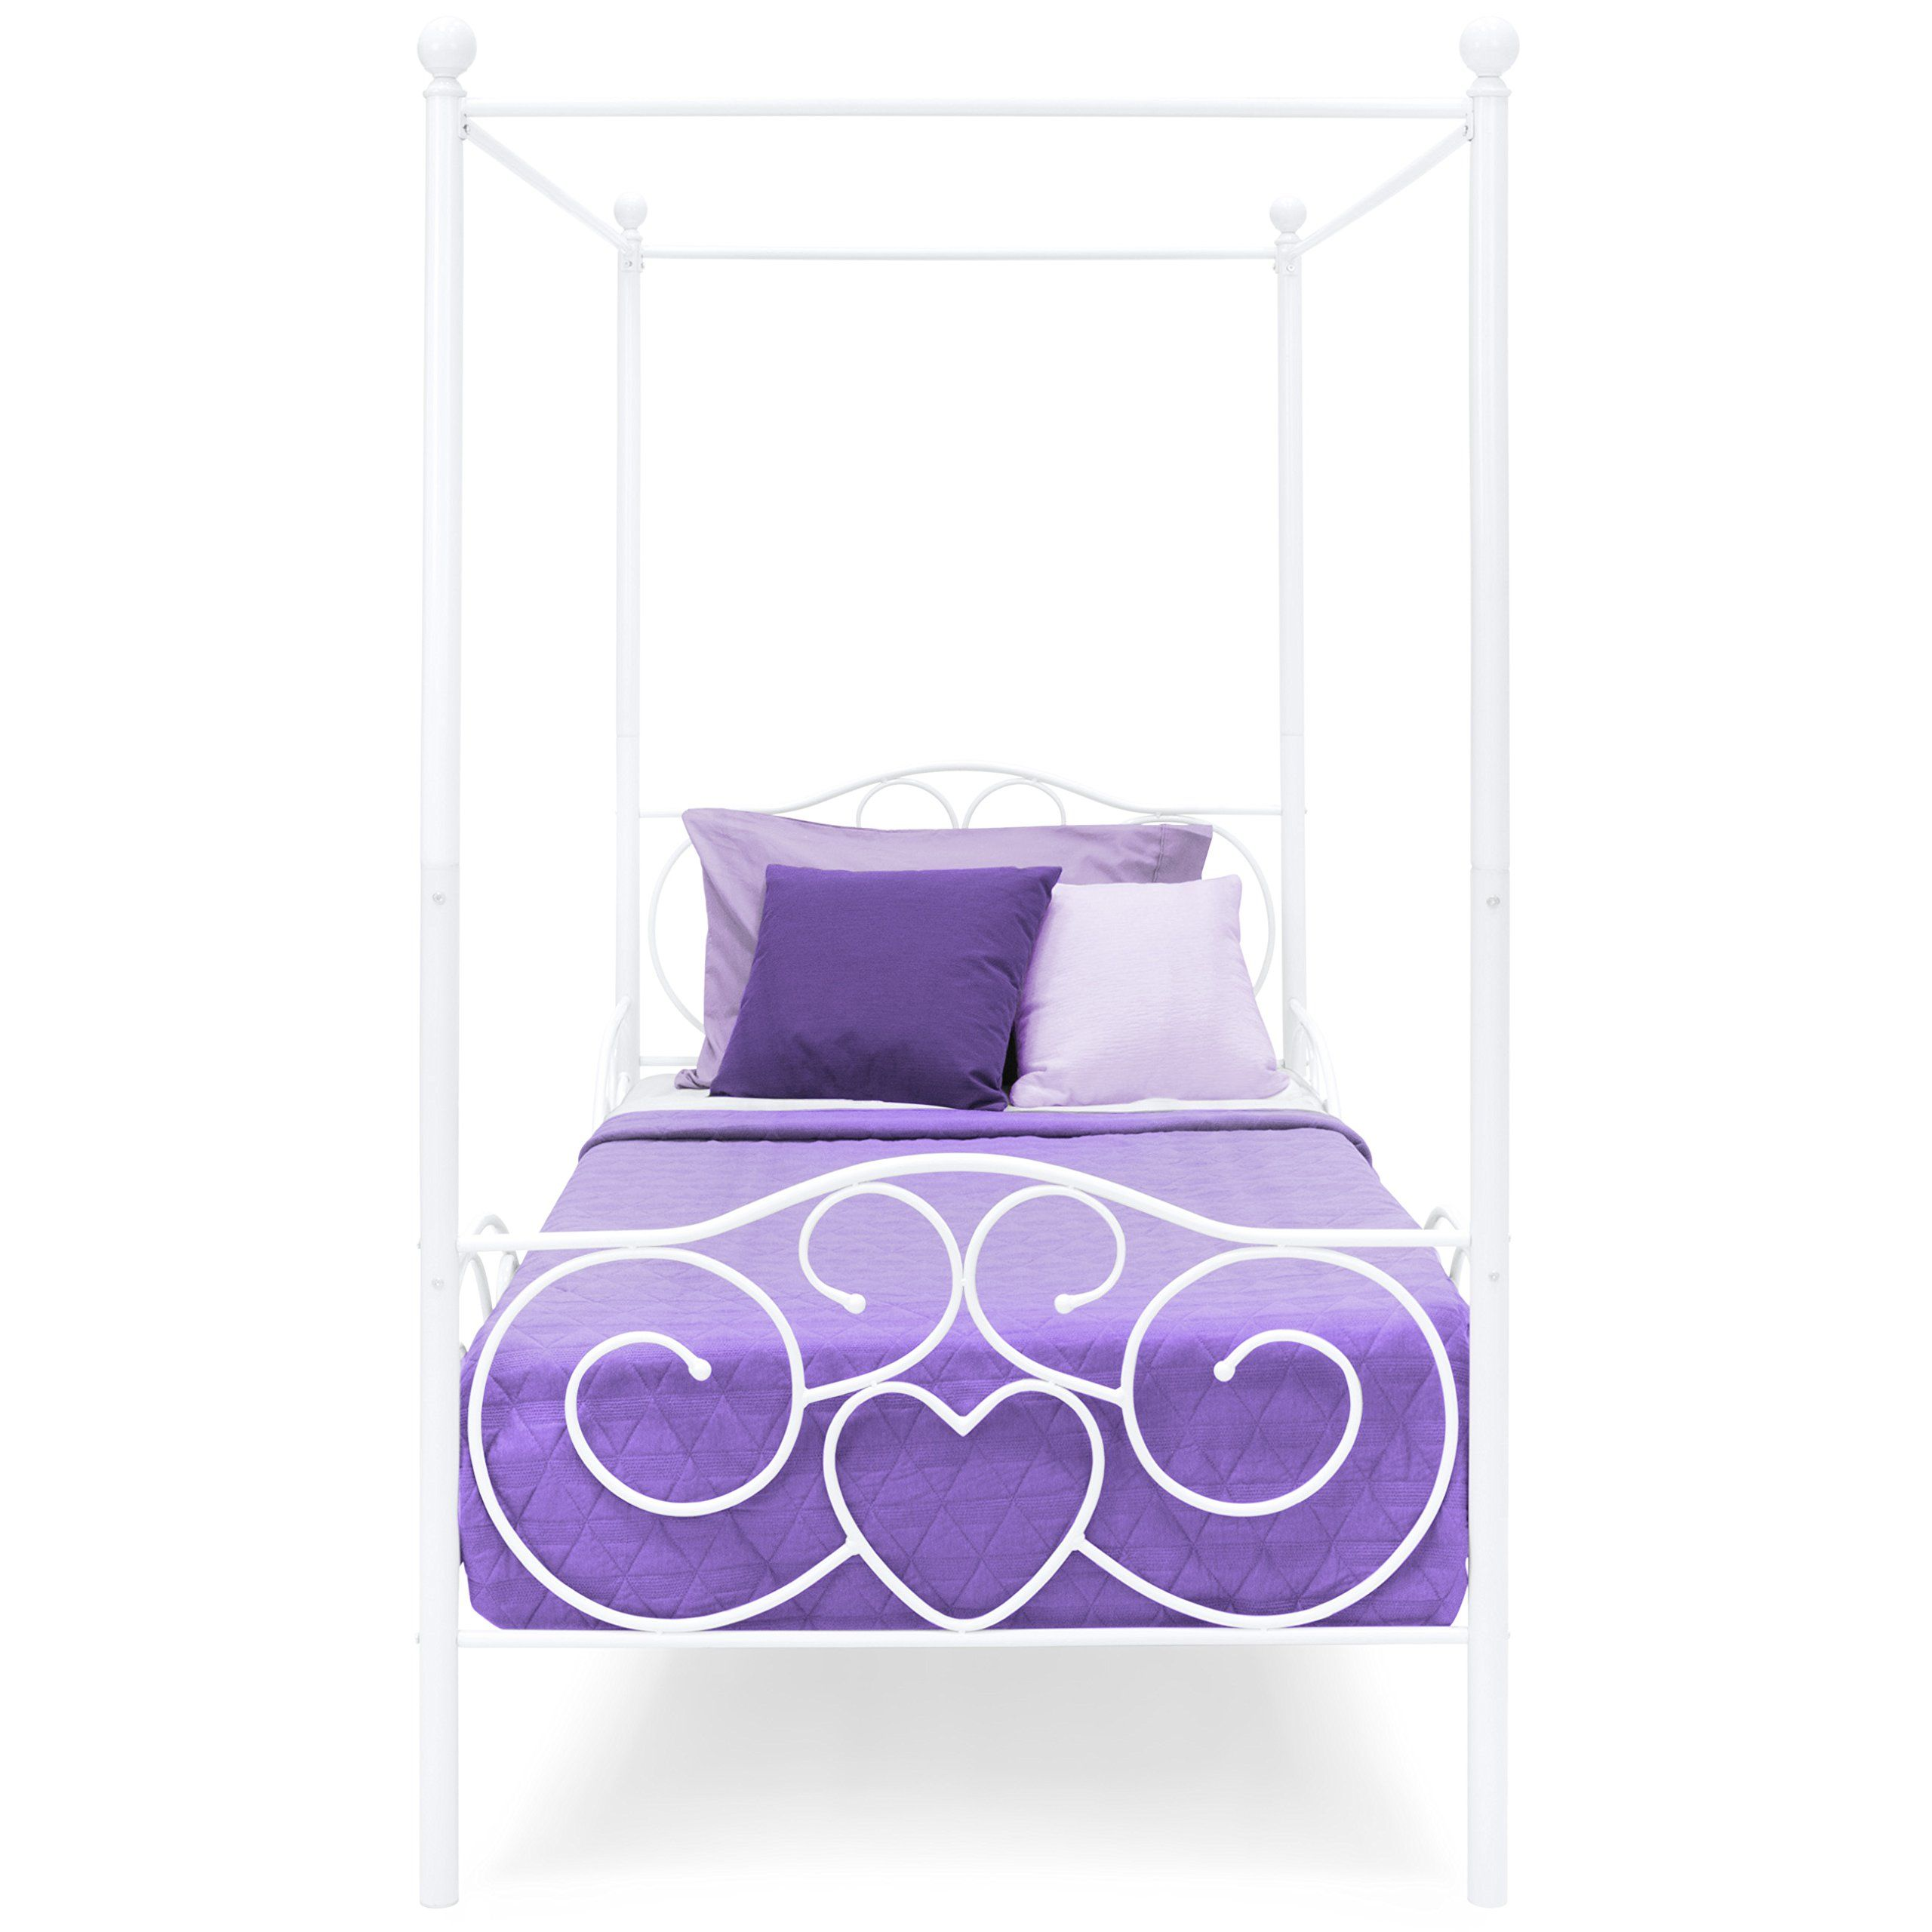 Best Choice Products 4 Post Metal Canopy Twin Bed Frame w/Heart ...